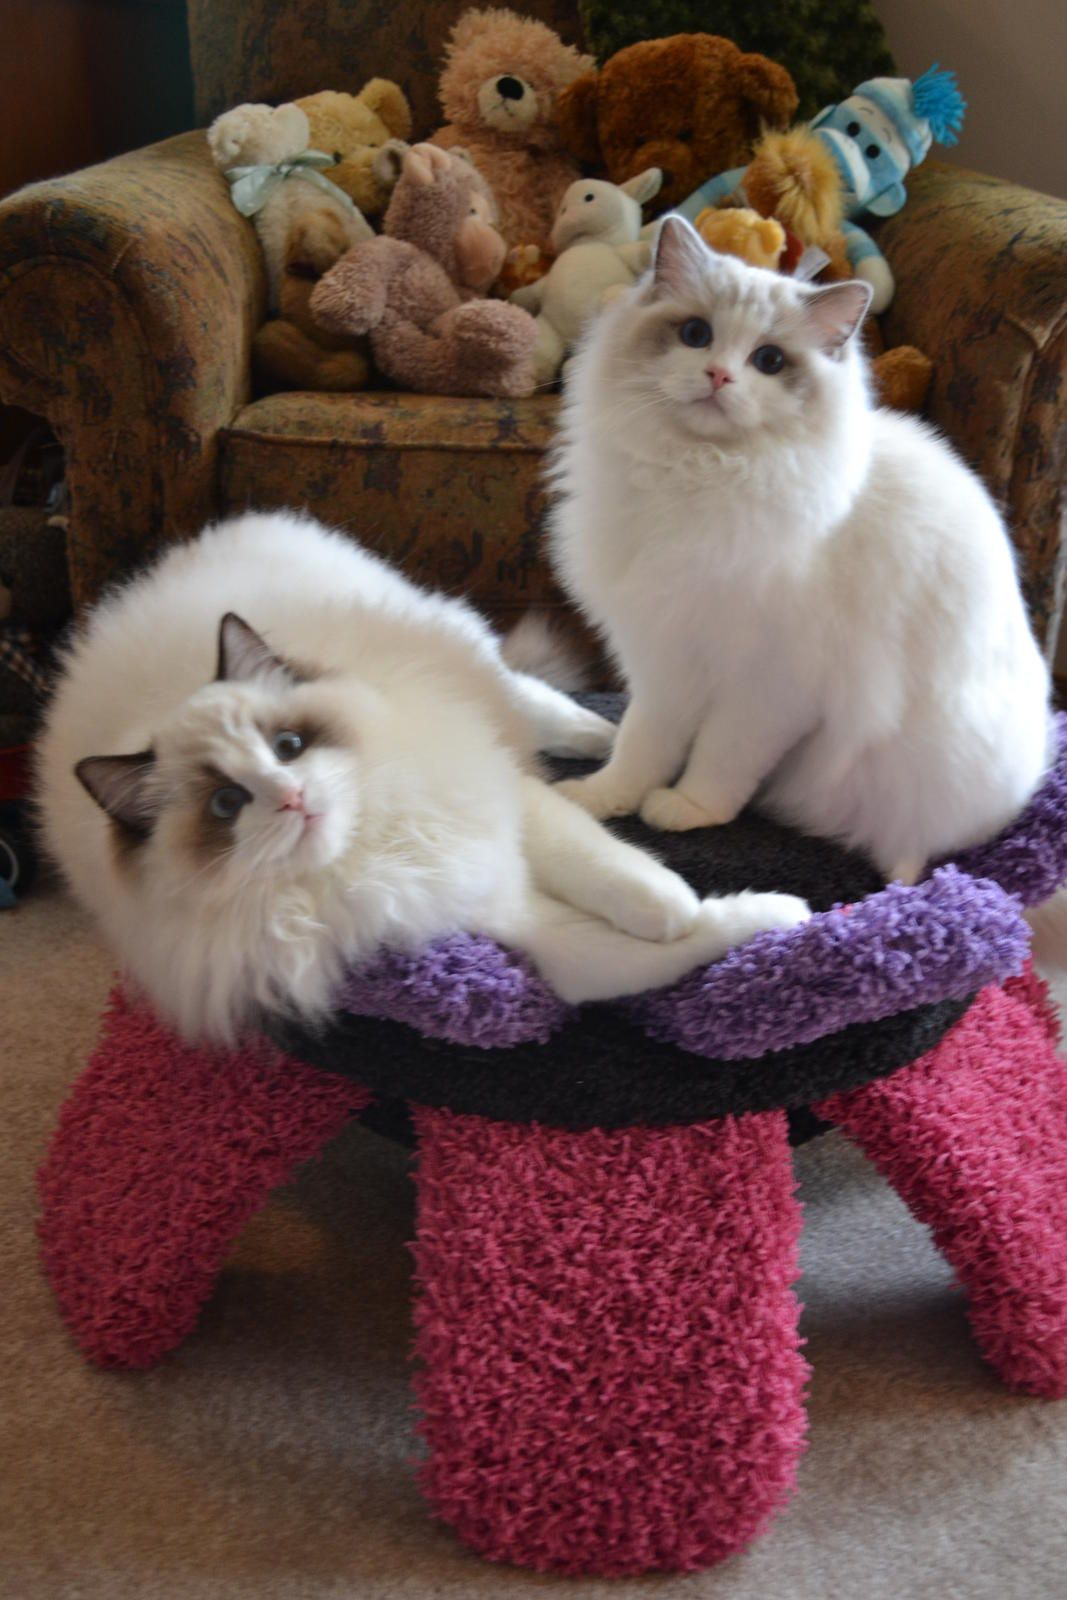 Pin By Patricia Gross On Animaux Cute Cats Cute Animals Cute Animal Pictures